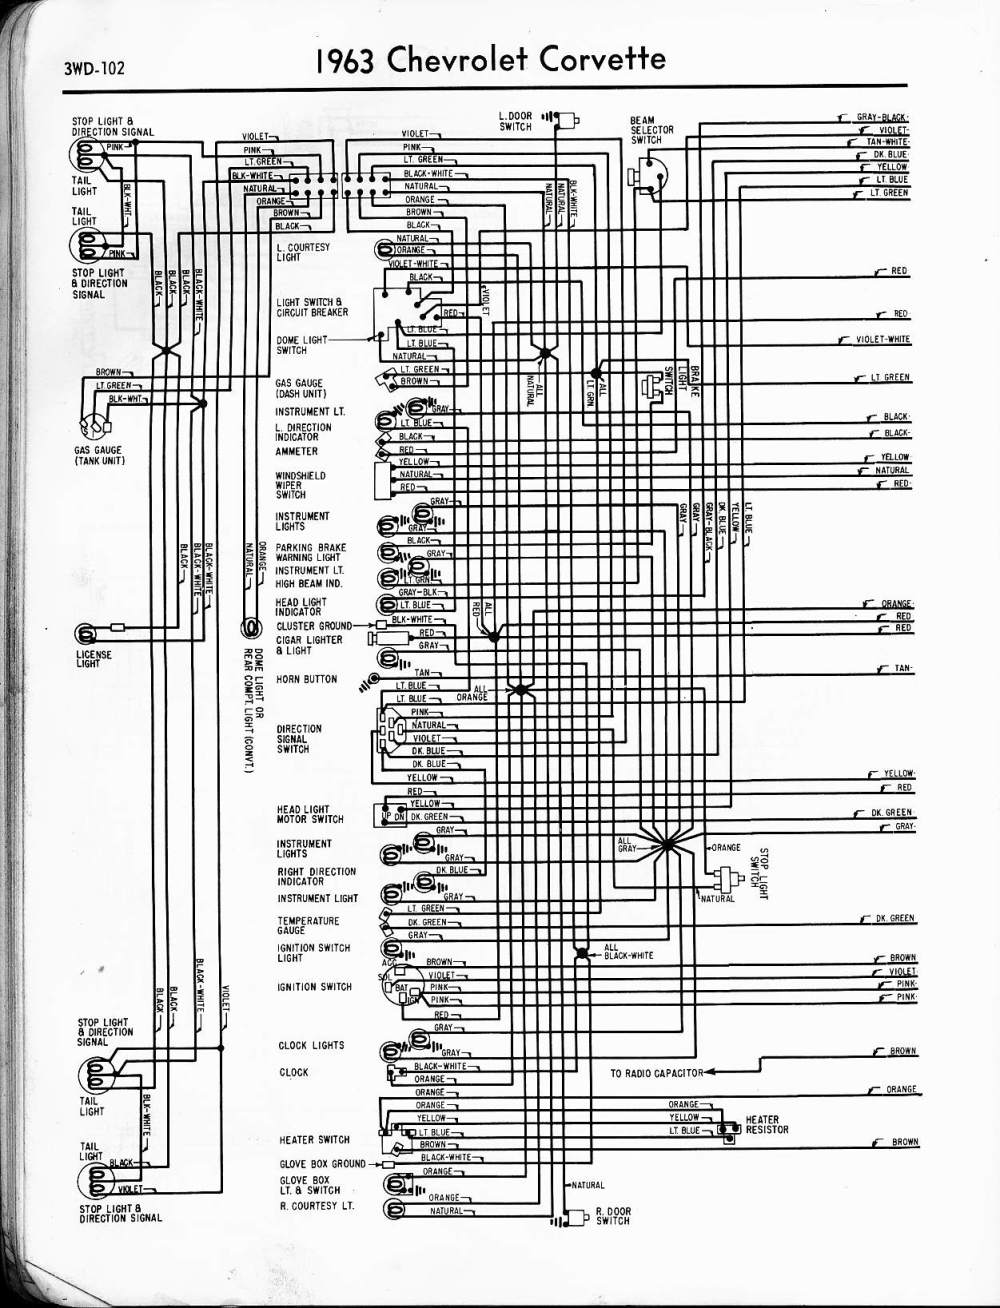 medium resolution of 63 impala wiring diagram wiring diagram portal 1966 impala wiring diagram 1963 impala wire harness diagram